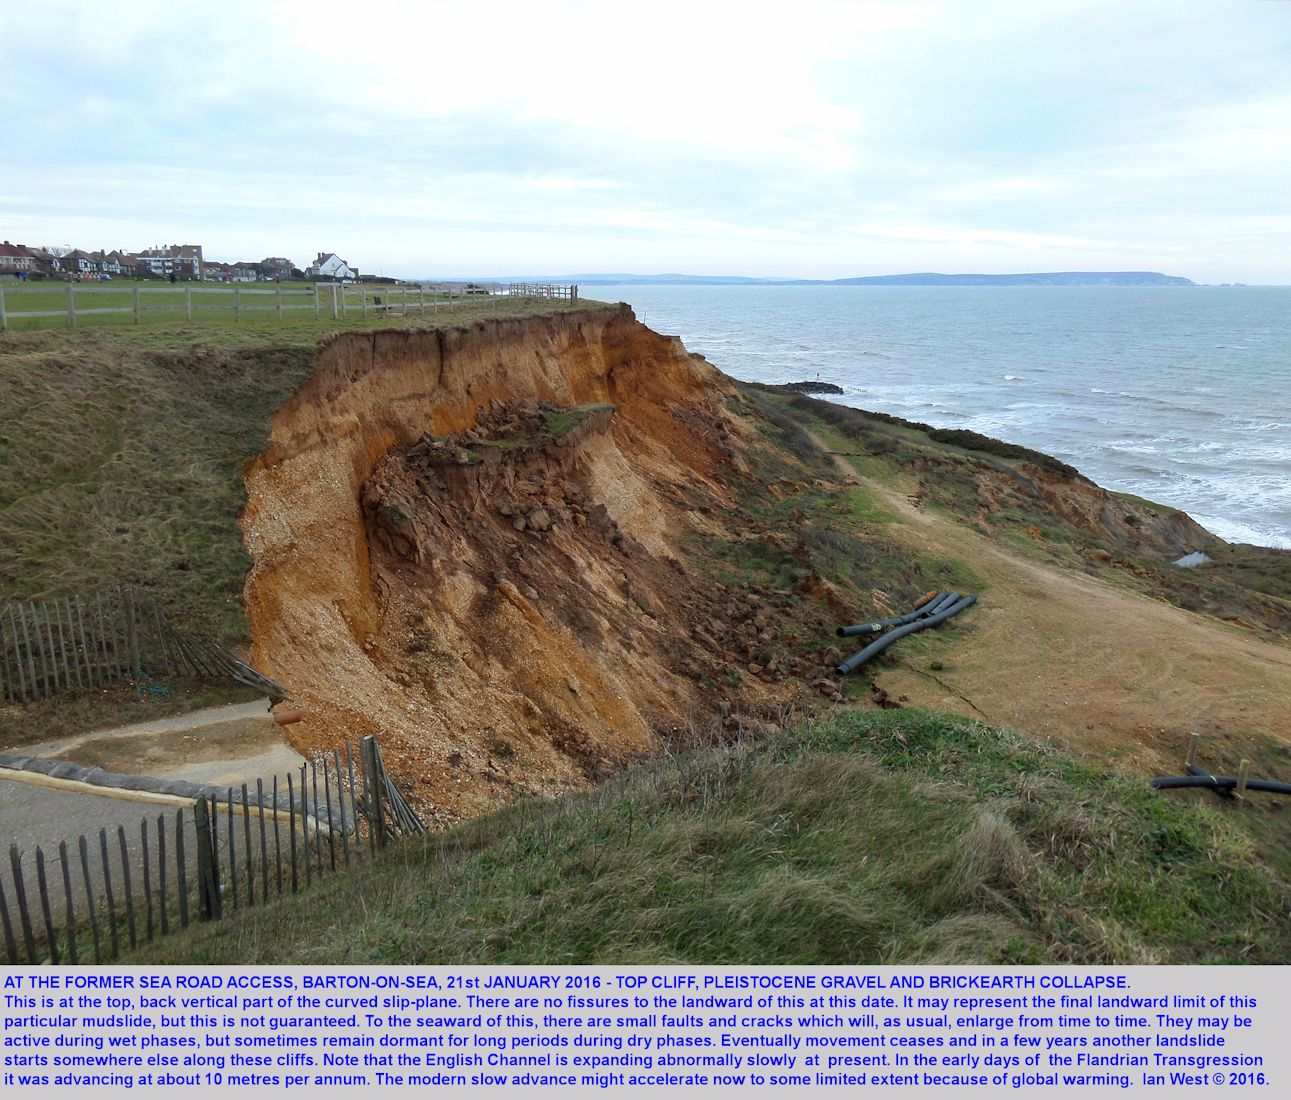 The back Pleistocene Gravel and Brickearth scarp, NE side, at the upper part of the Old Sea Road Access mudslide, Barton-on-Sea, Hampshire, 21st January 2016